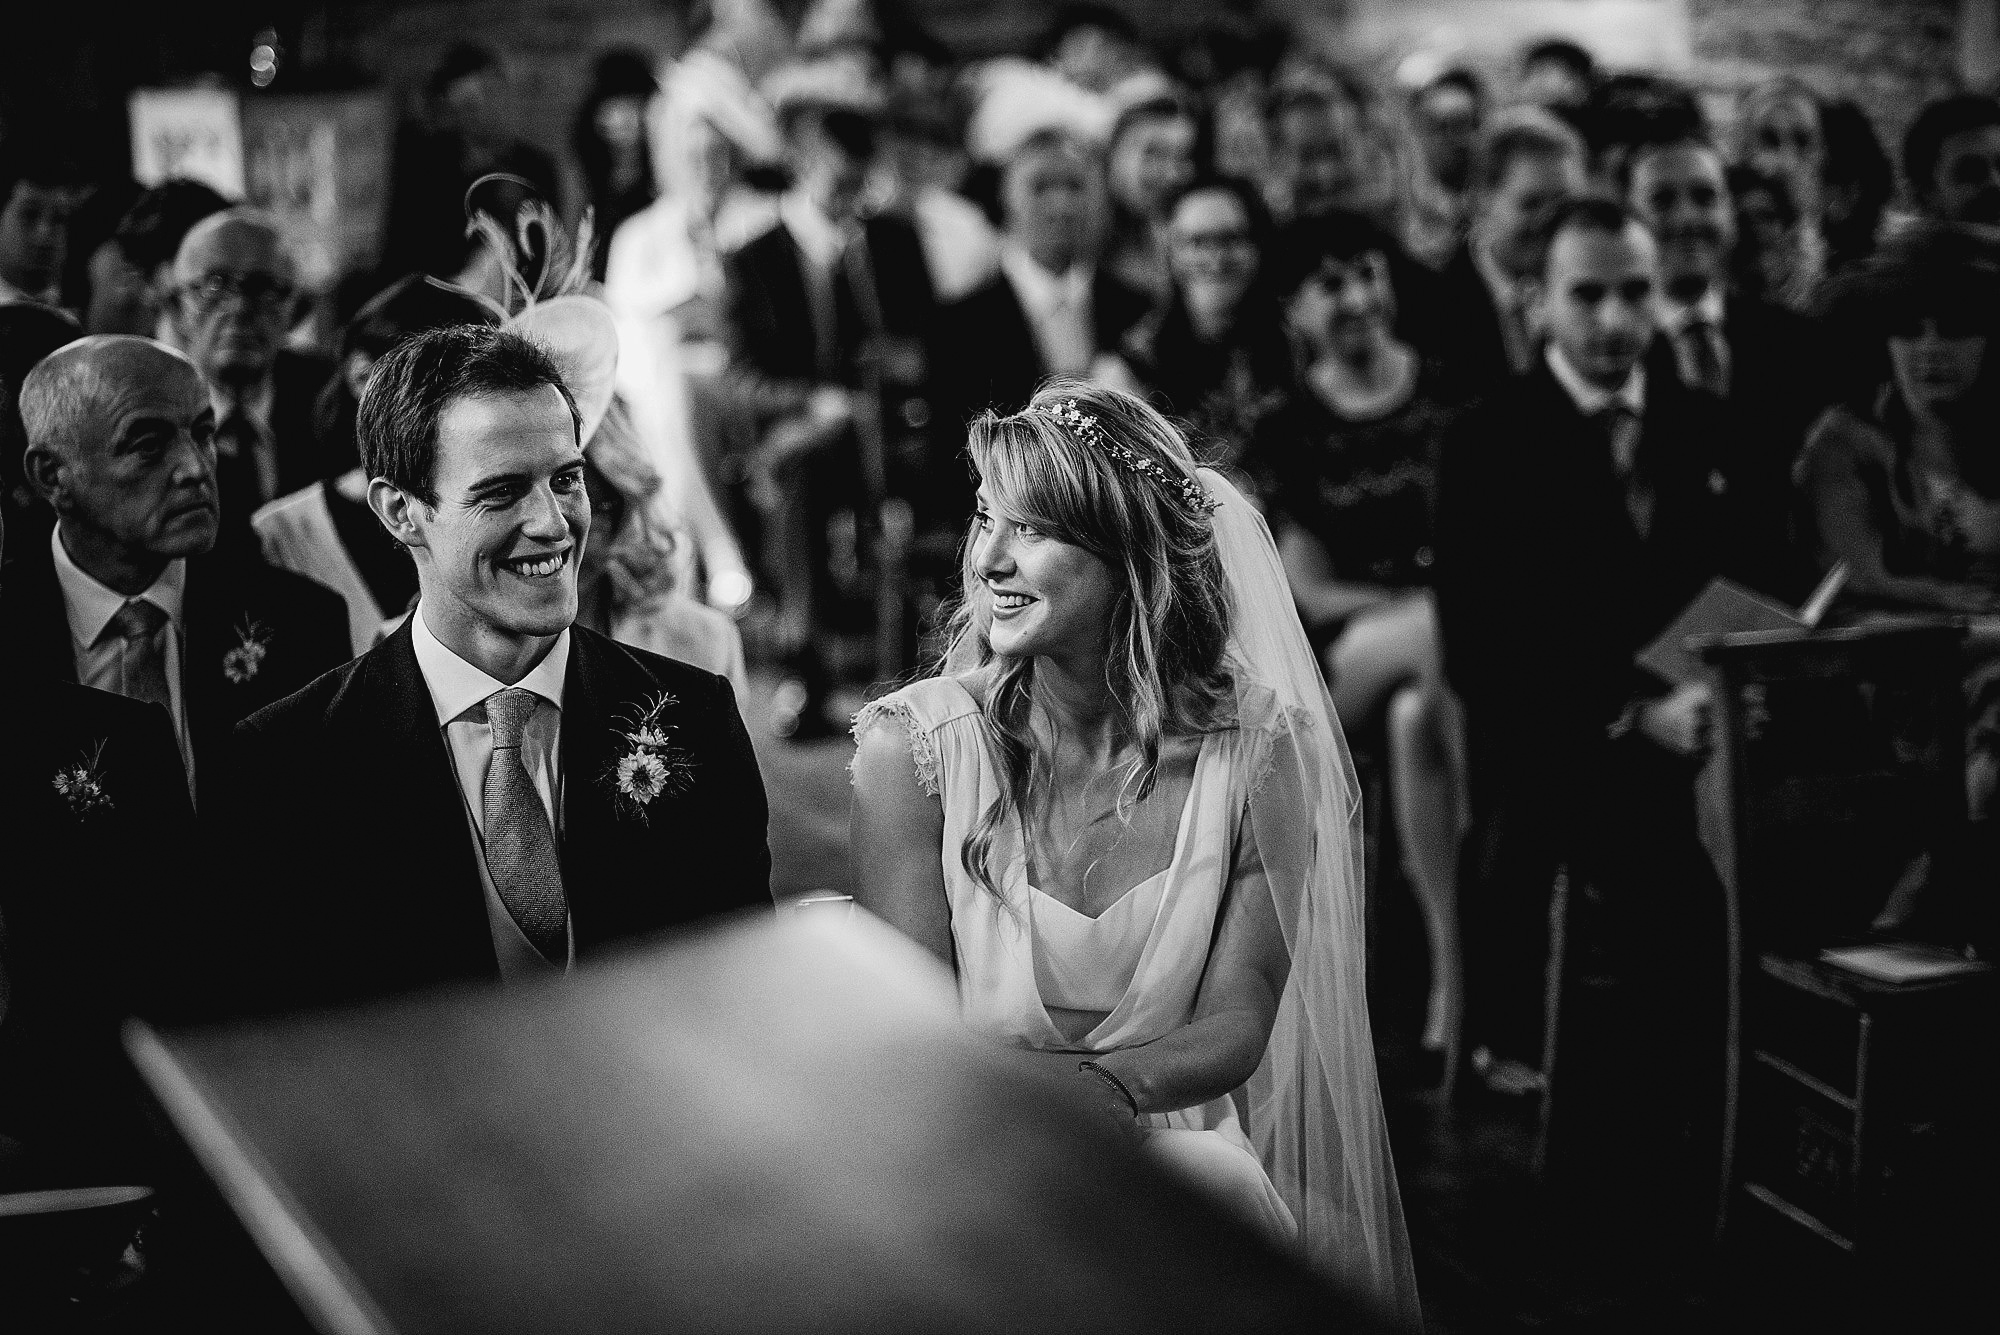 bride and groom during church ceremony in black and white